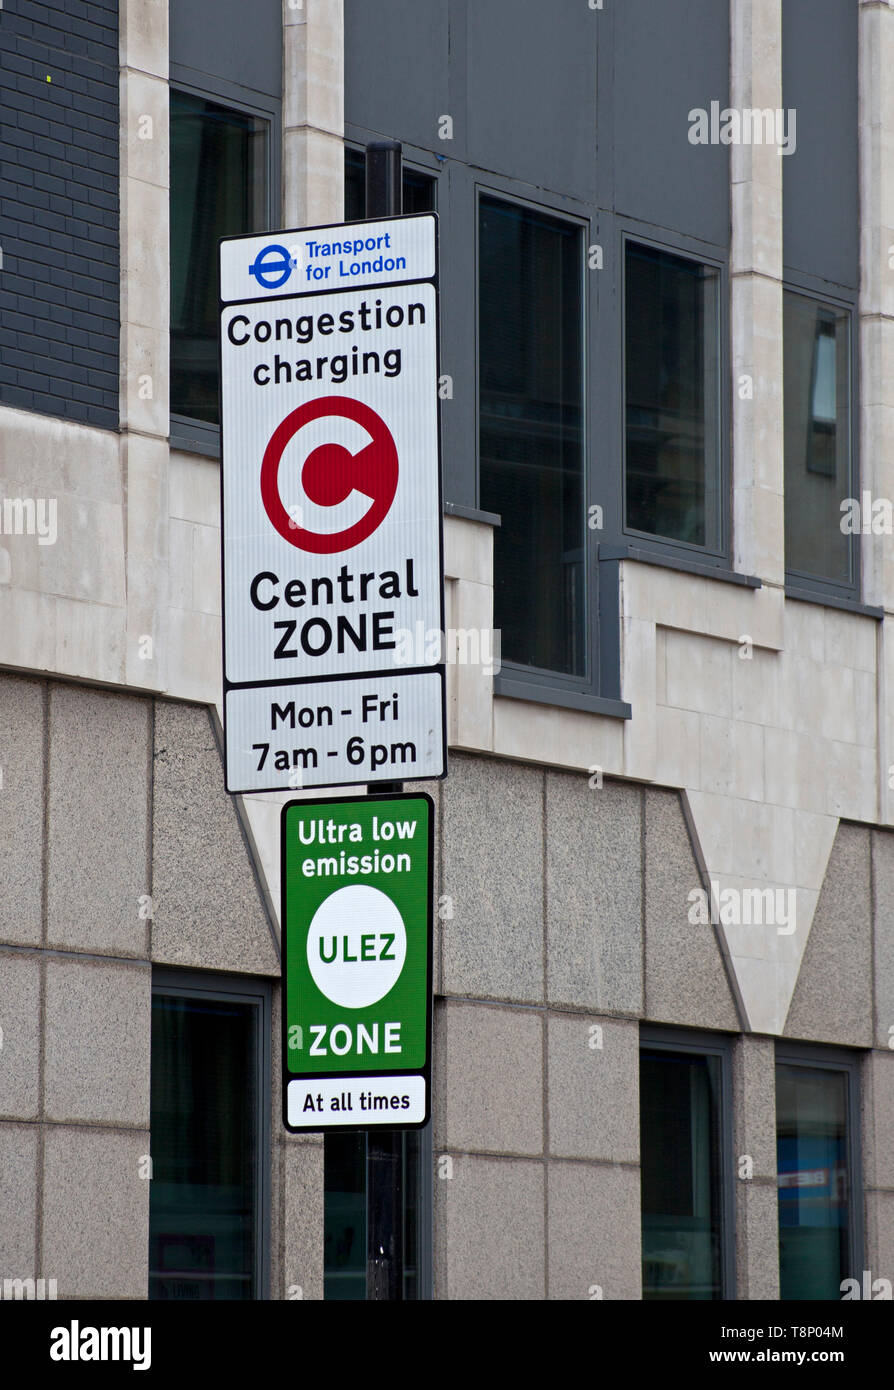 Congestion charging sign together with Ultra Low Emission Zone sign near Tower Bridge, London England. UK - Stock Image